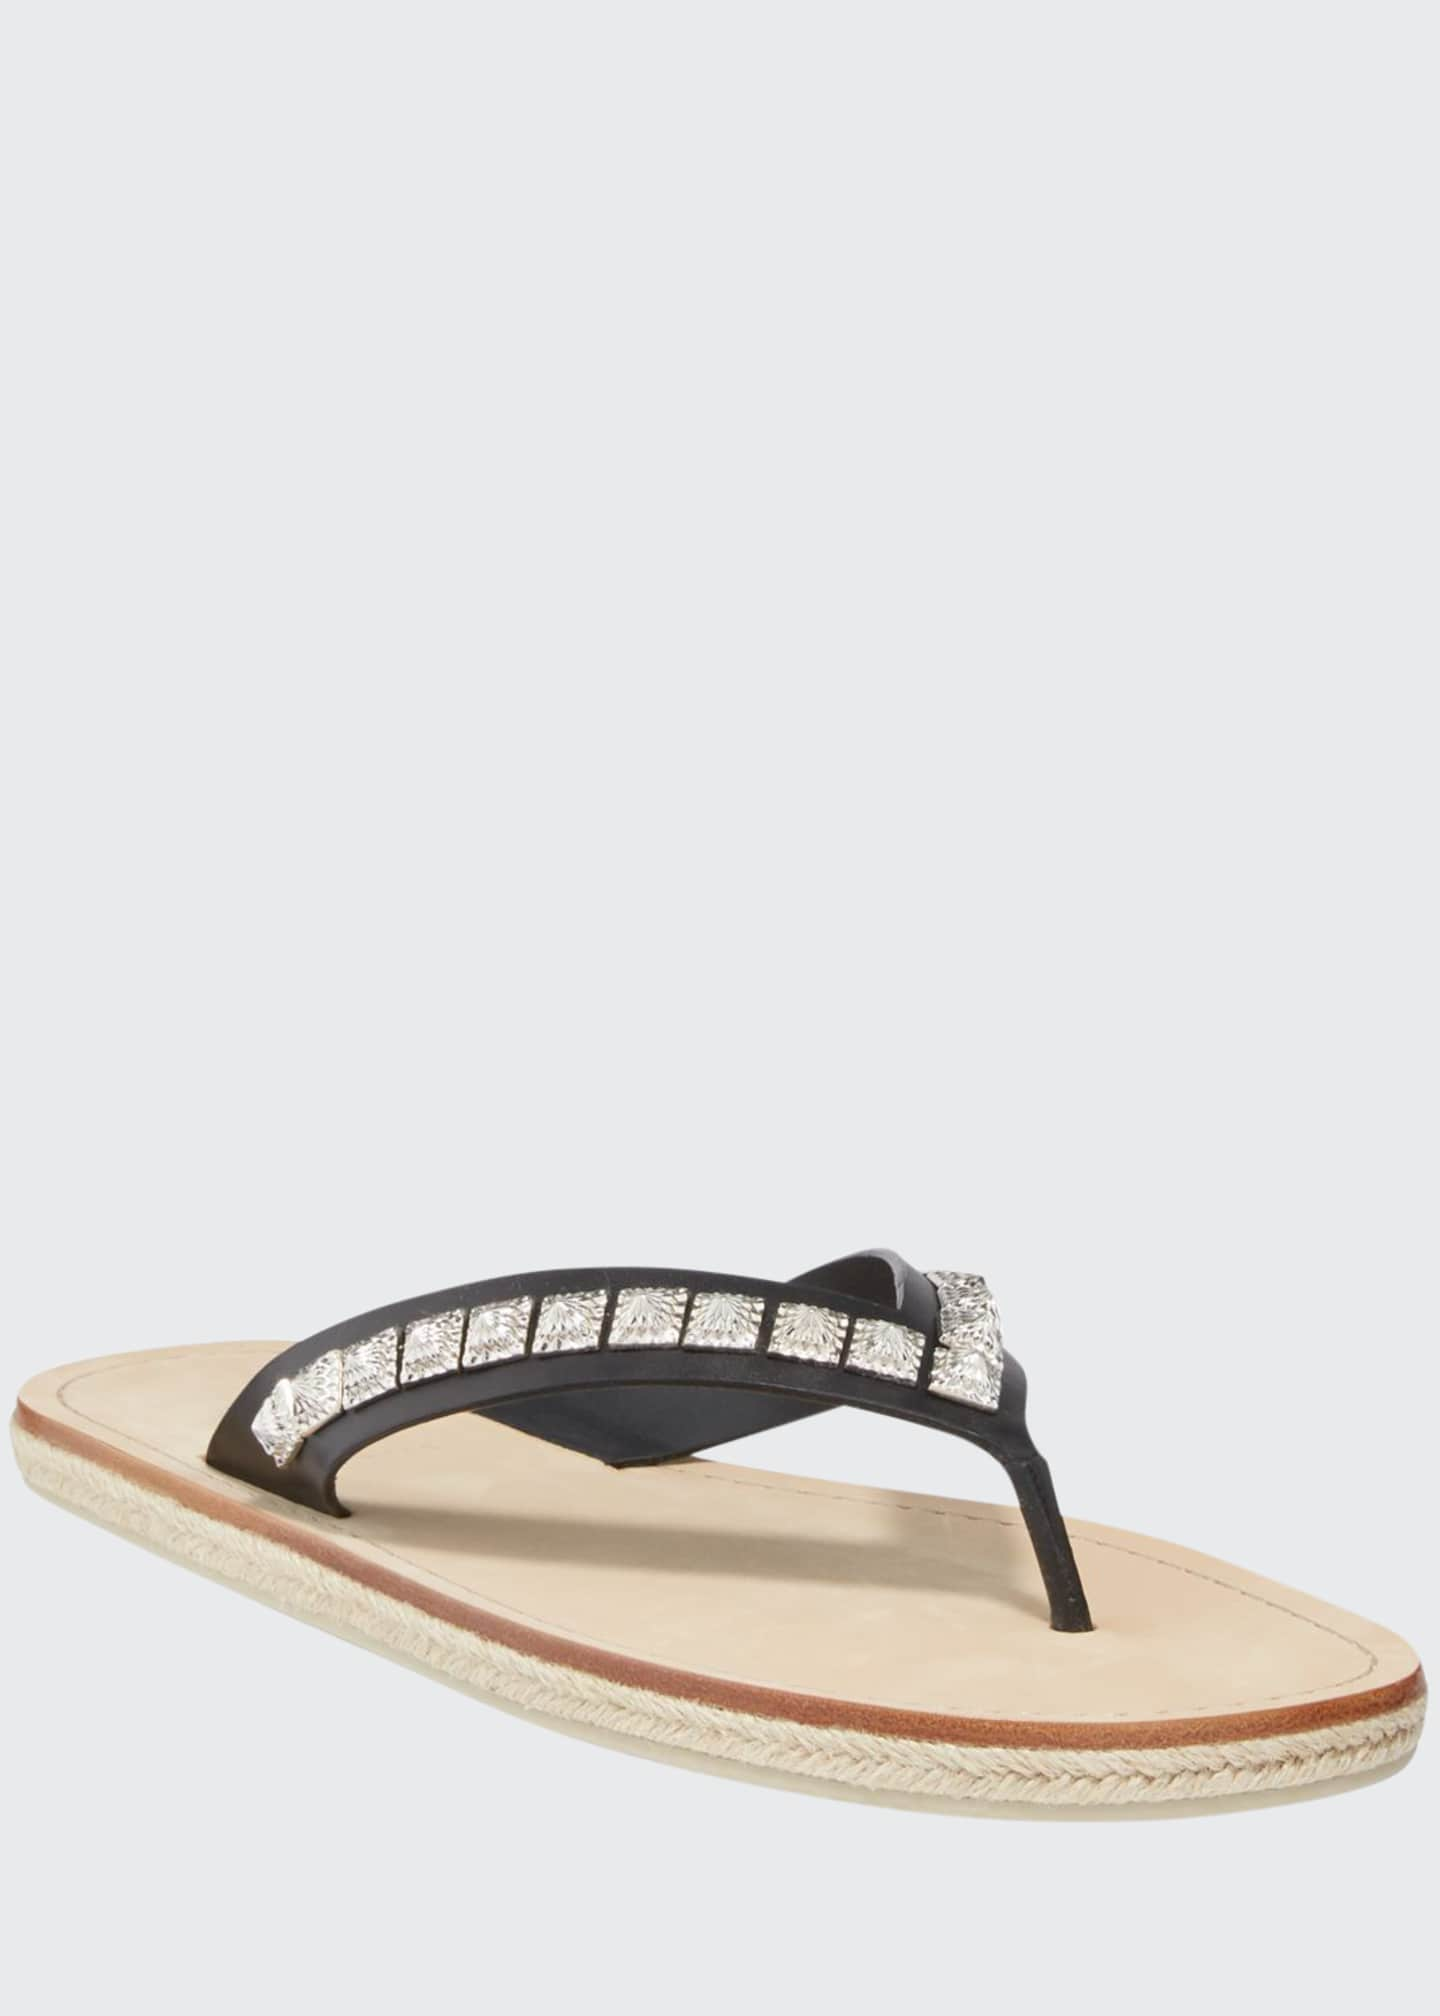 Christian Louboutin Men's Pyraclos Studded Leather Thong Sandals